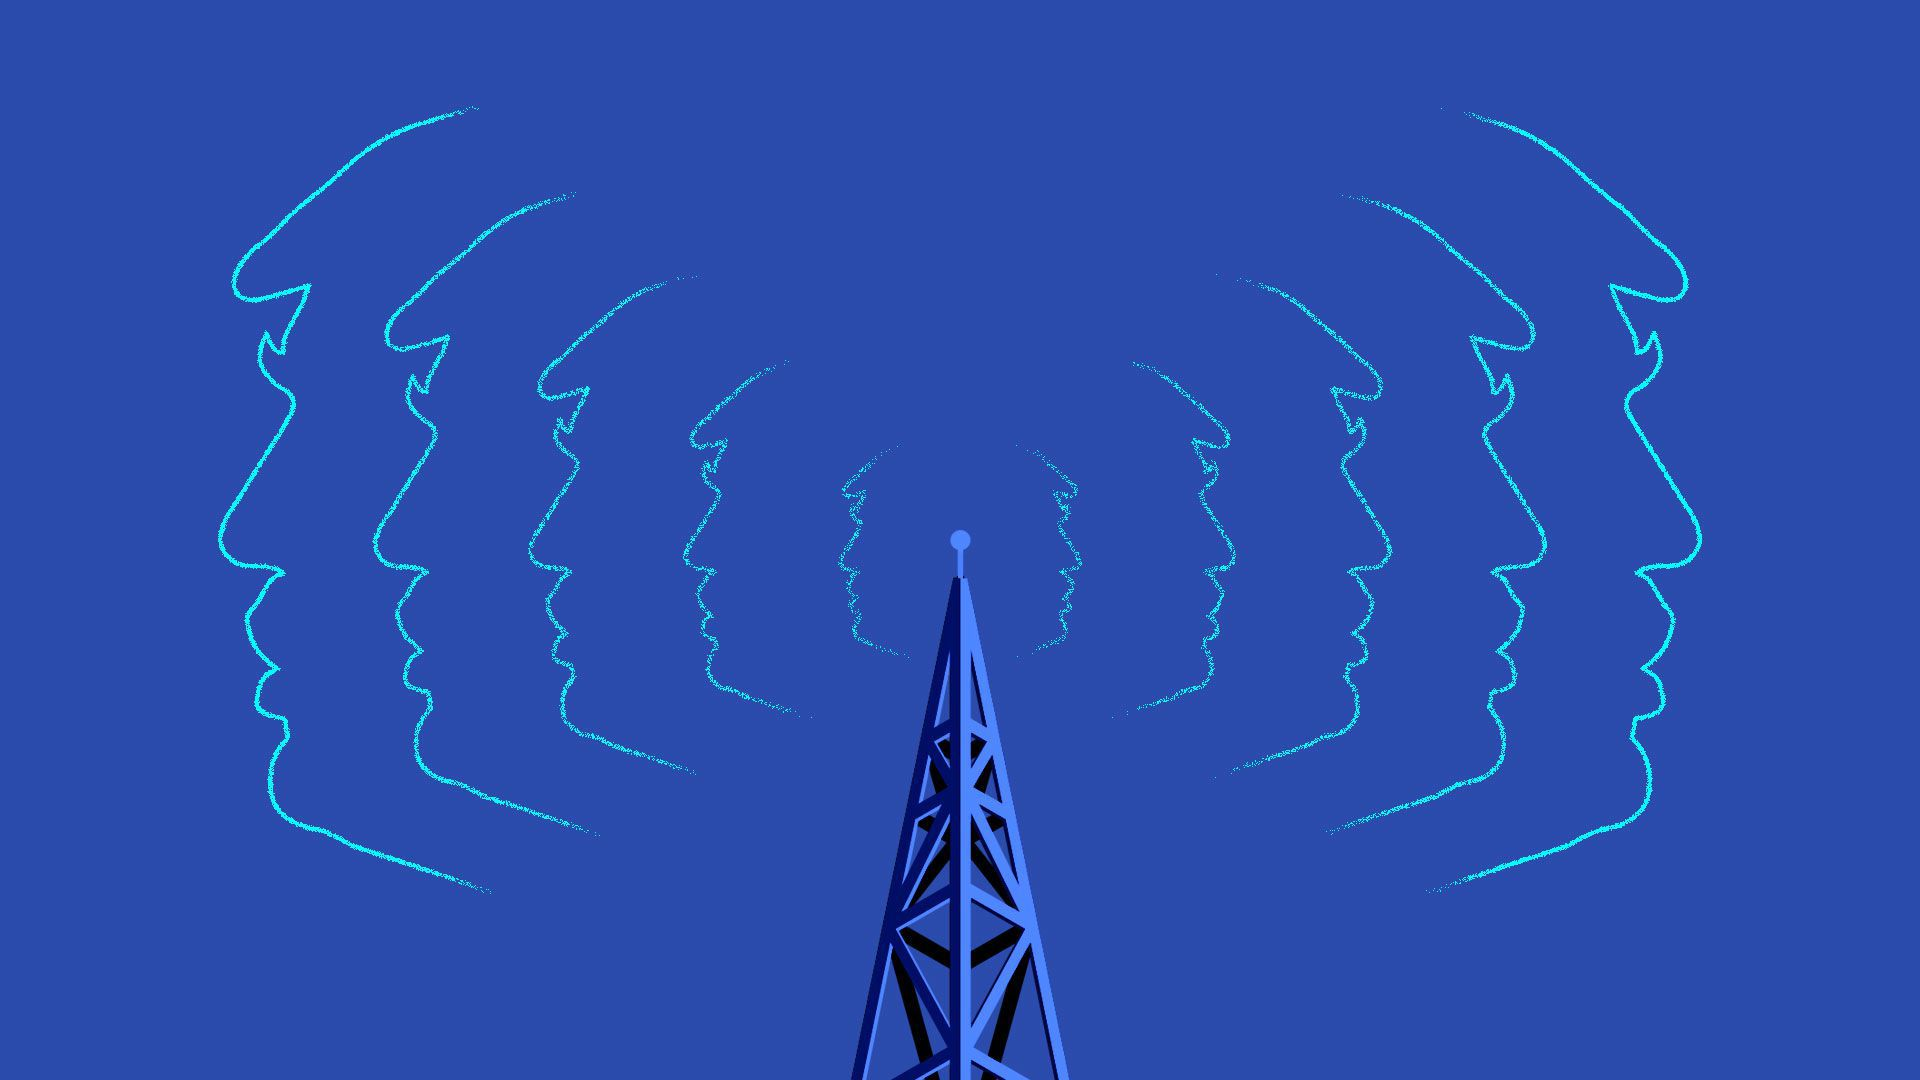 An illustration with the outline of President Trump's face radiating out from a cell tower